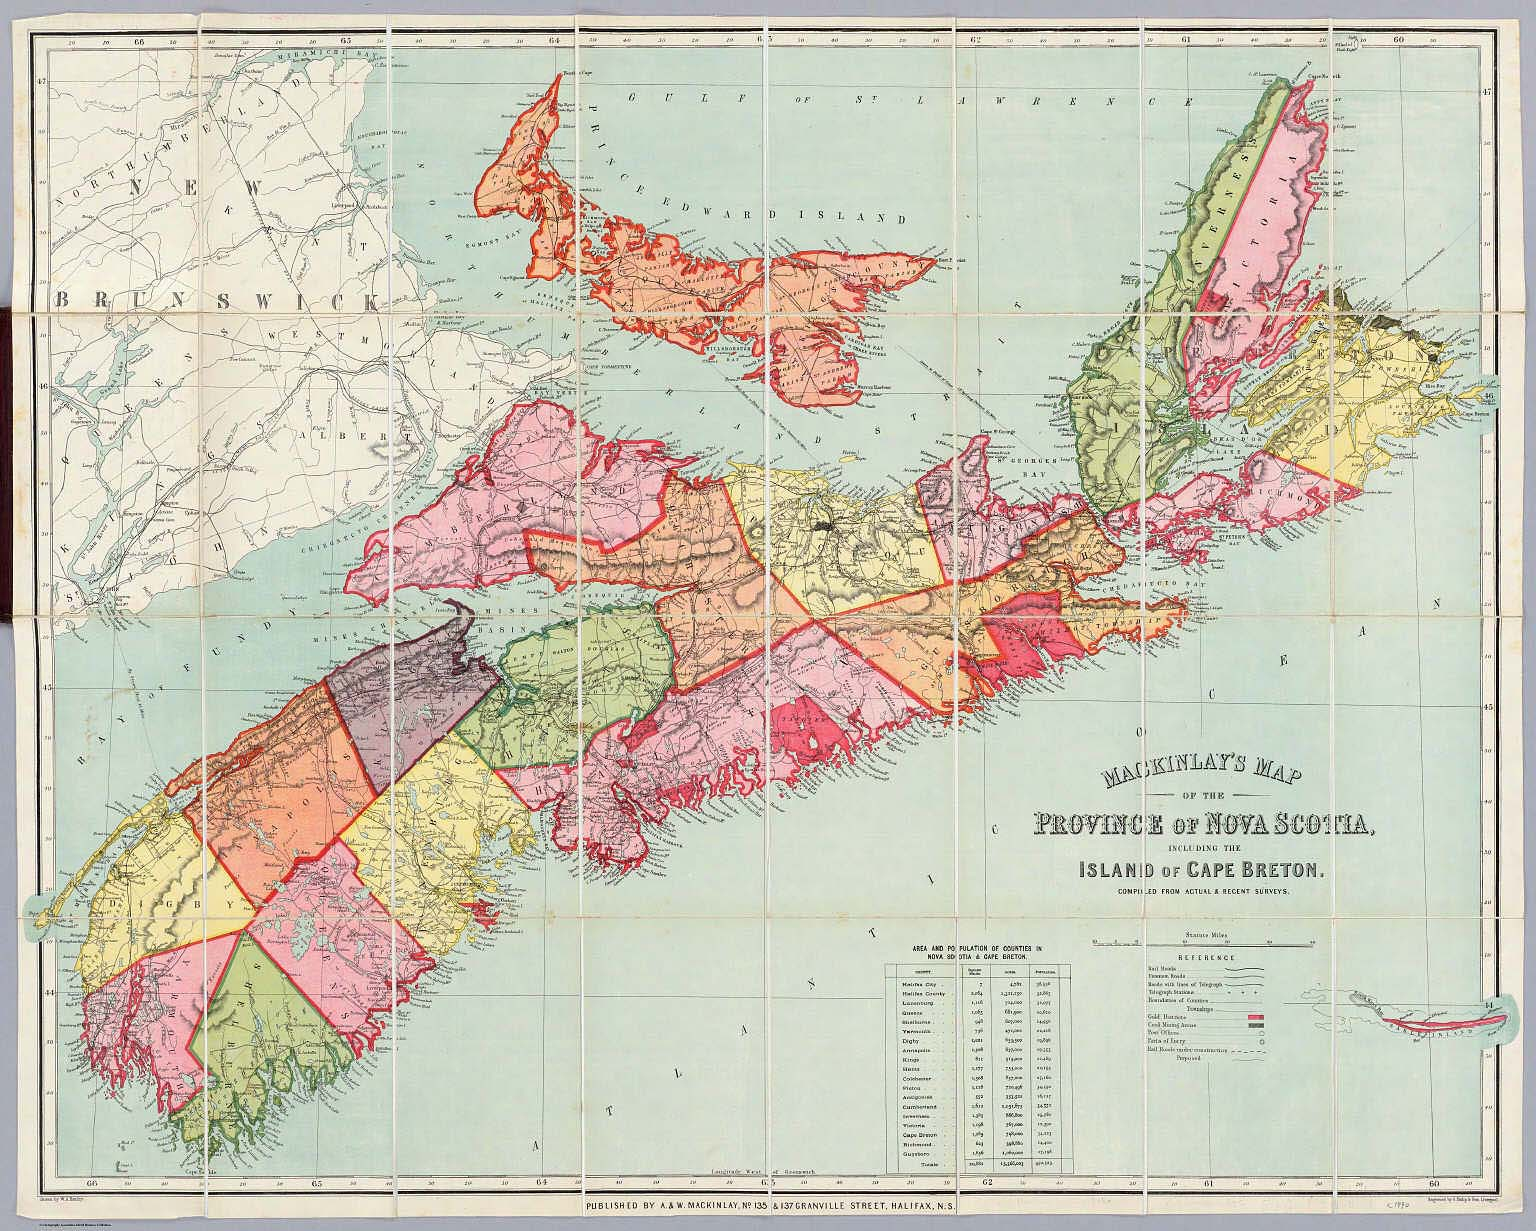 Mackinlay's map of the Province of Nova Scotia, including the island of Cape Breton.